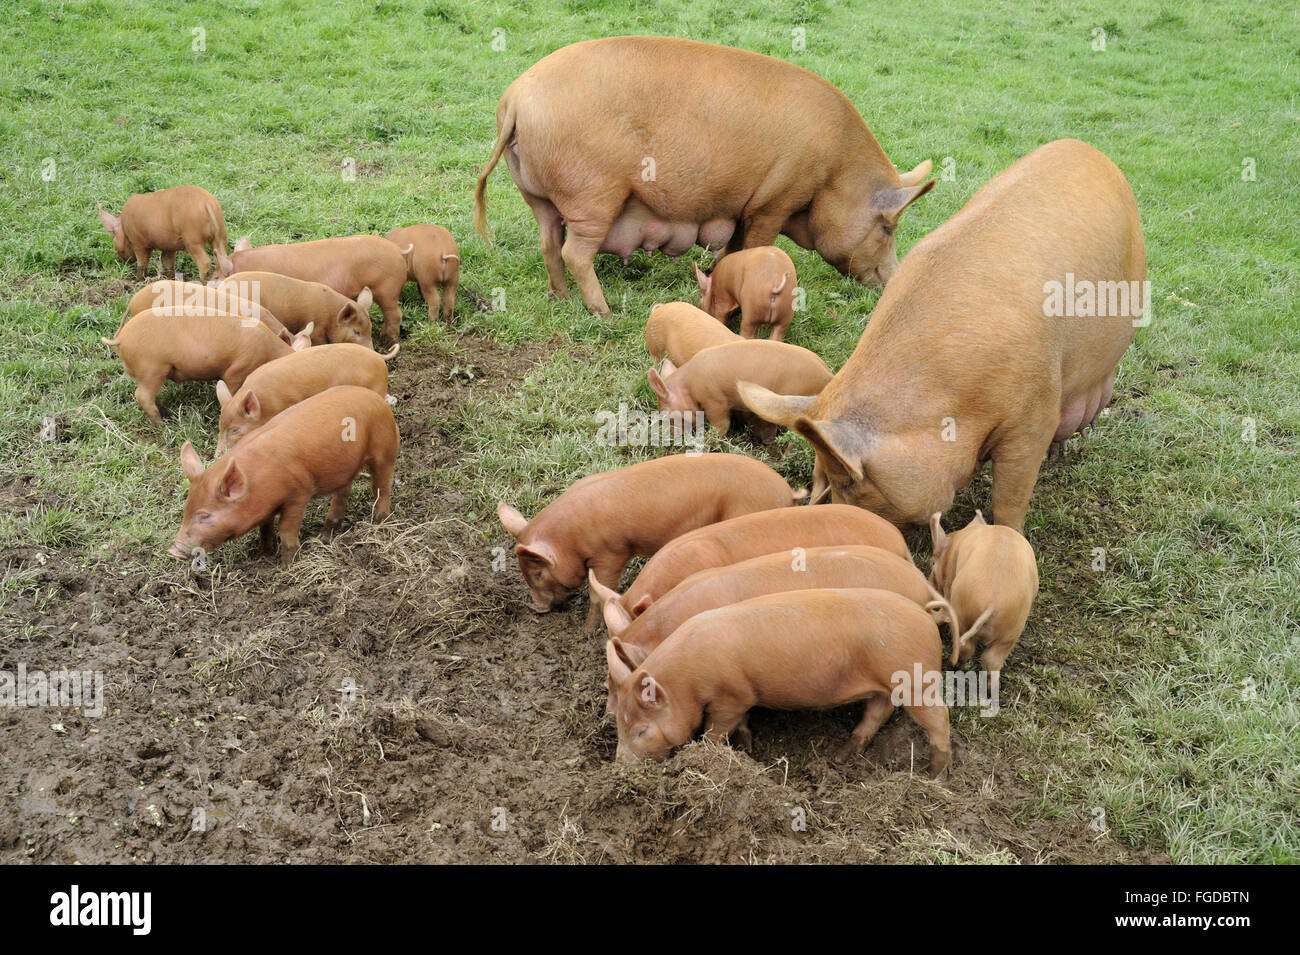 Domestic Pig, Tamworth sows with sixteen piglets, feeding in field, Cornwall, England, August - Stock Image